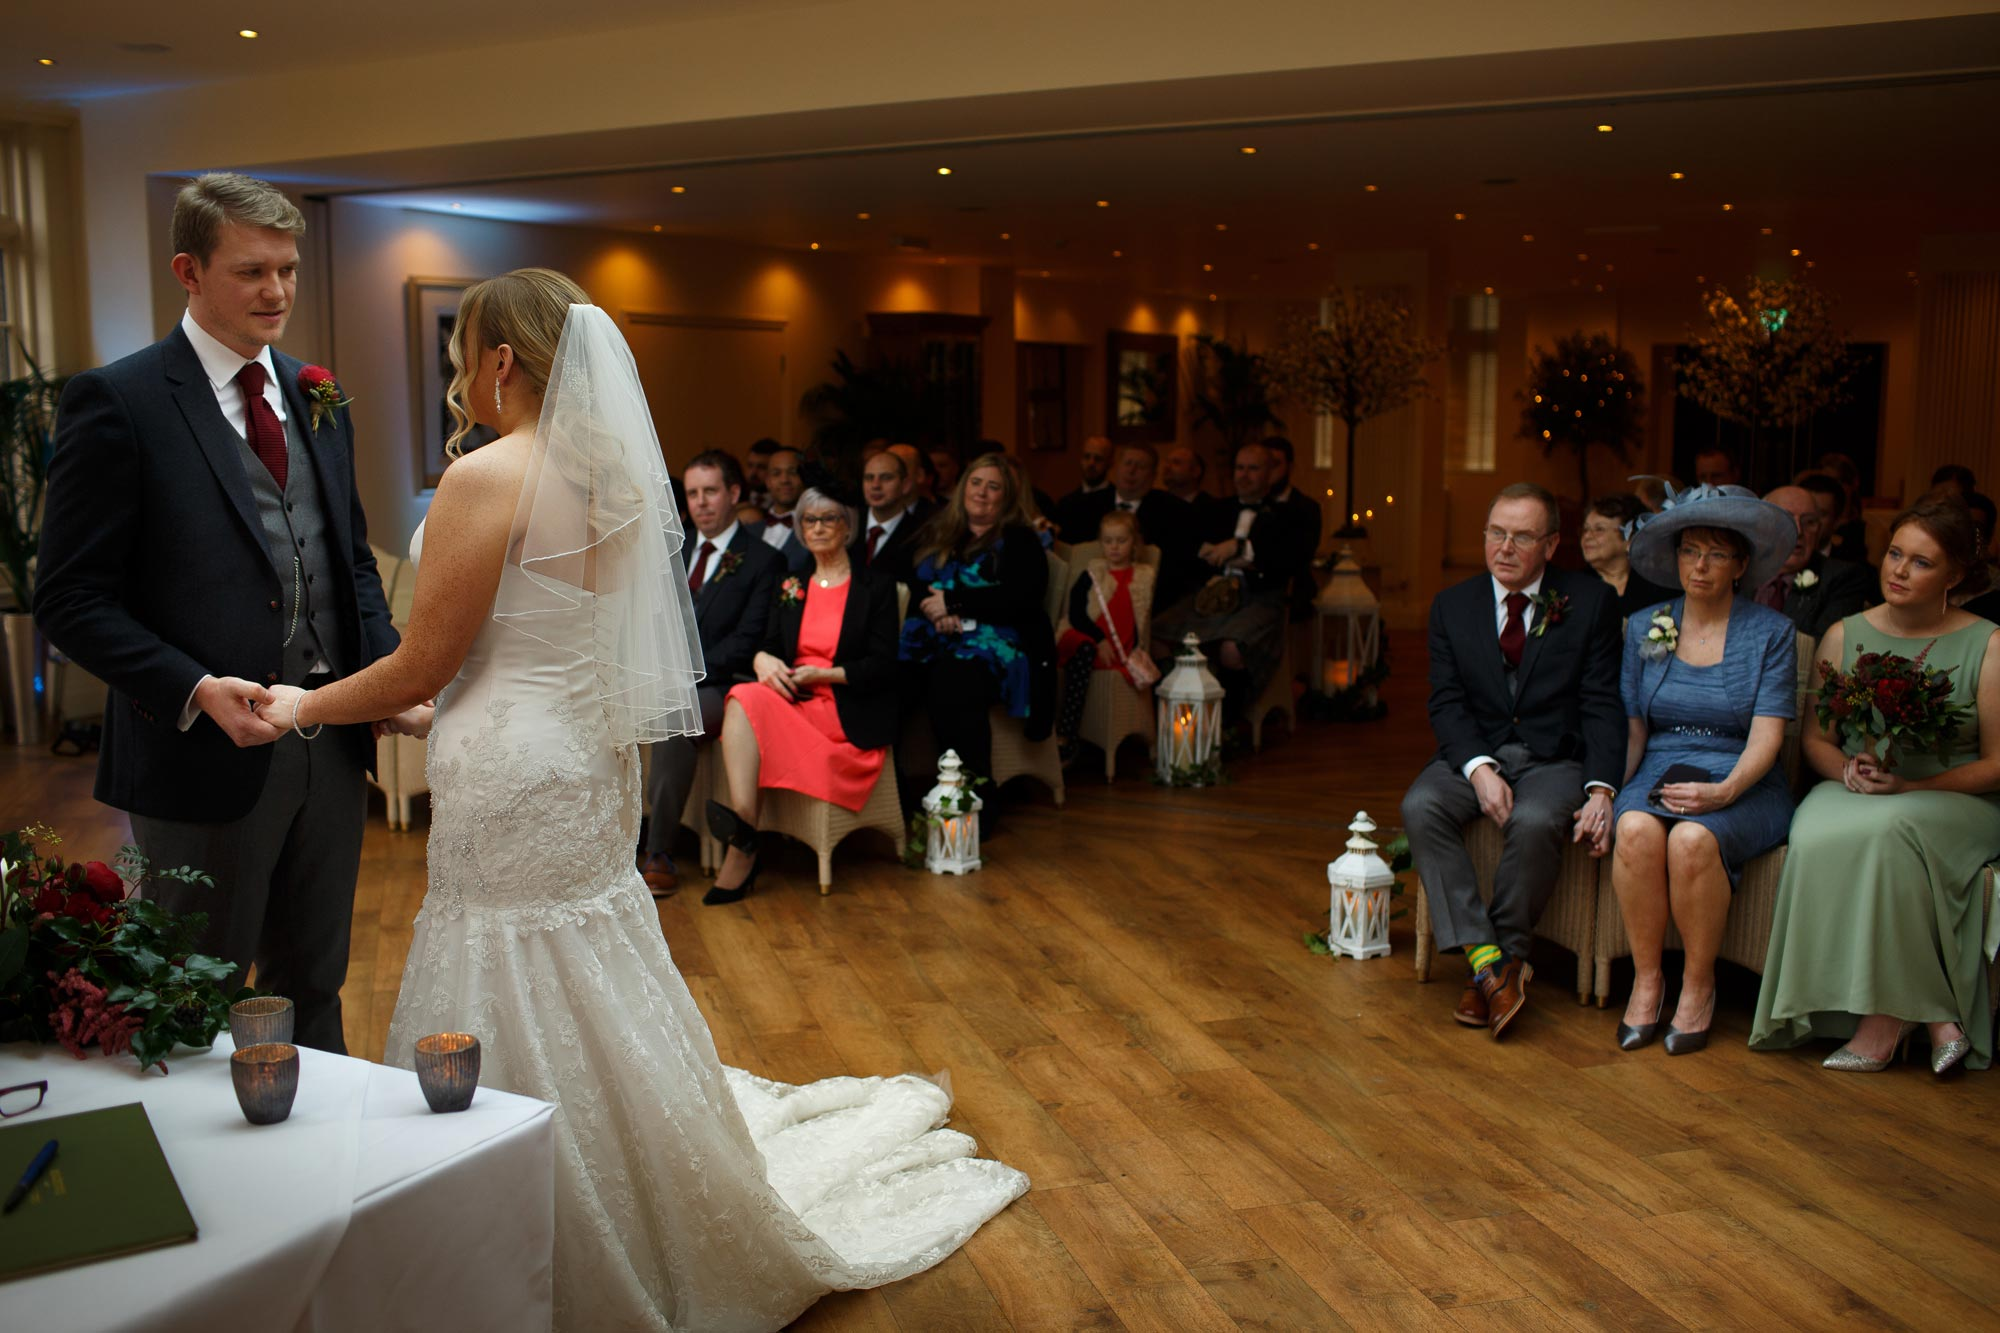 Wide angle of the Bride and Groom saying their vows inside the conservatory at Mitton Hall